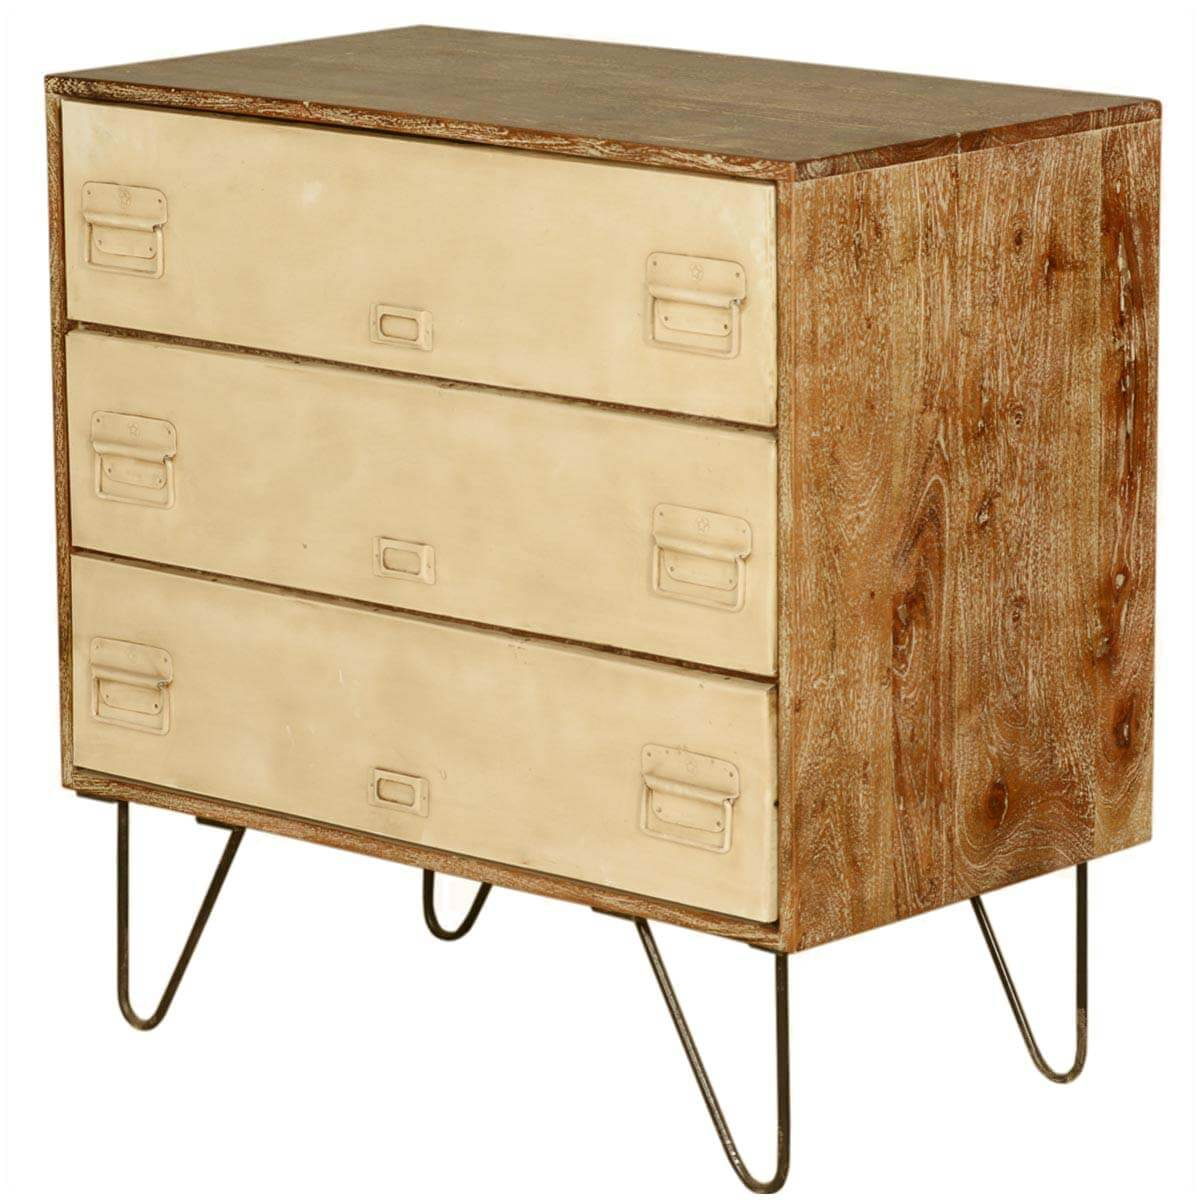 Wooden Filing Cabinets 3 DrawerFull Size Of Storage